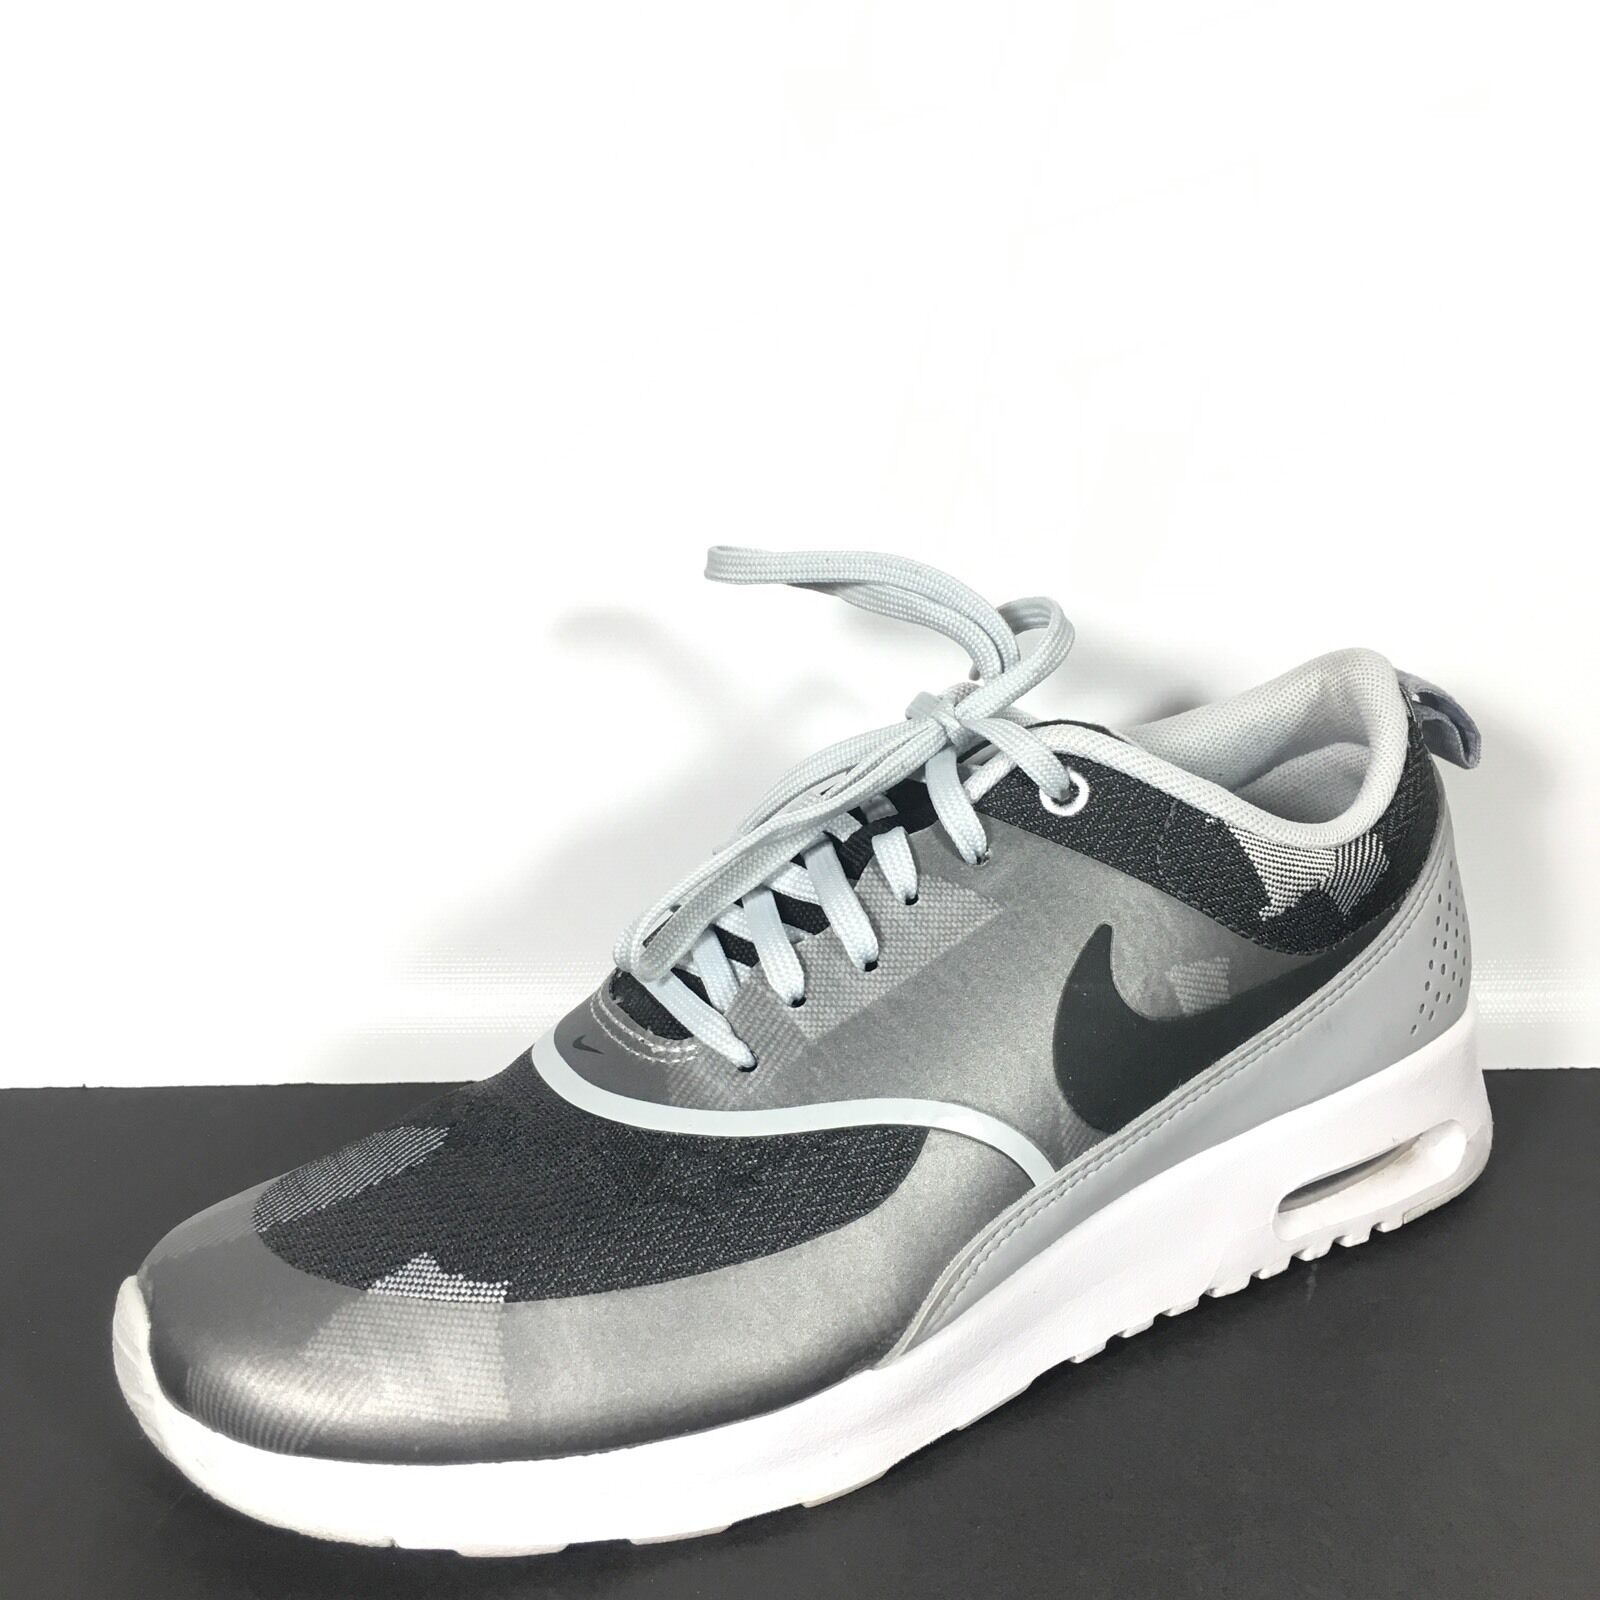 Nike Air Max Thea Women's 8 Pure Platinum Black Grey Athletic Sneakers